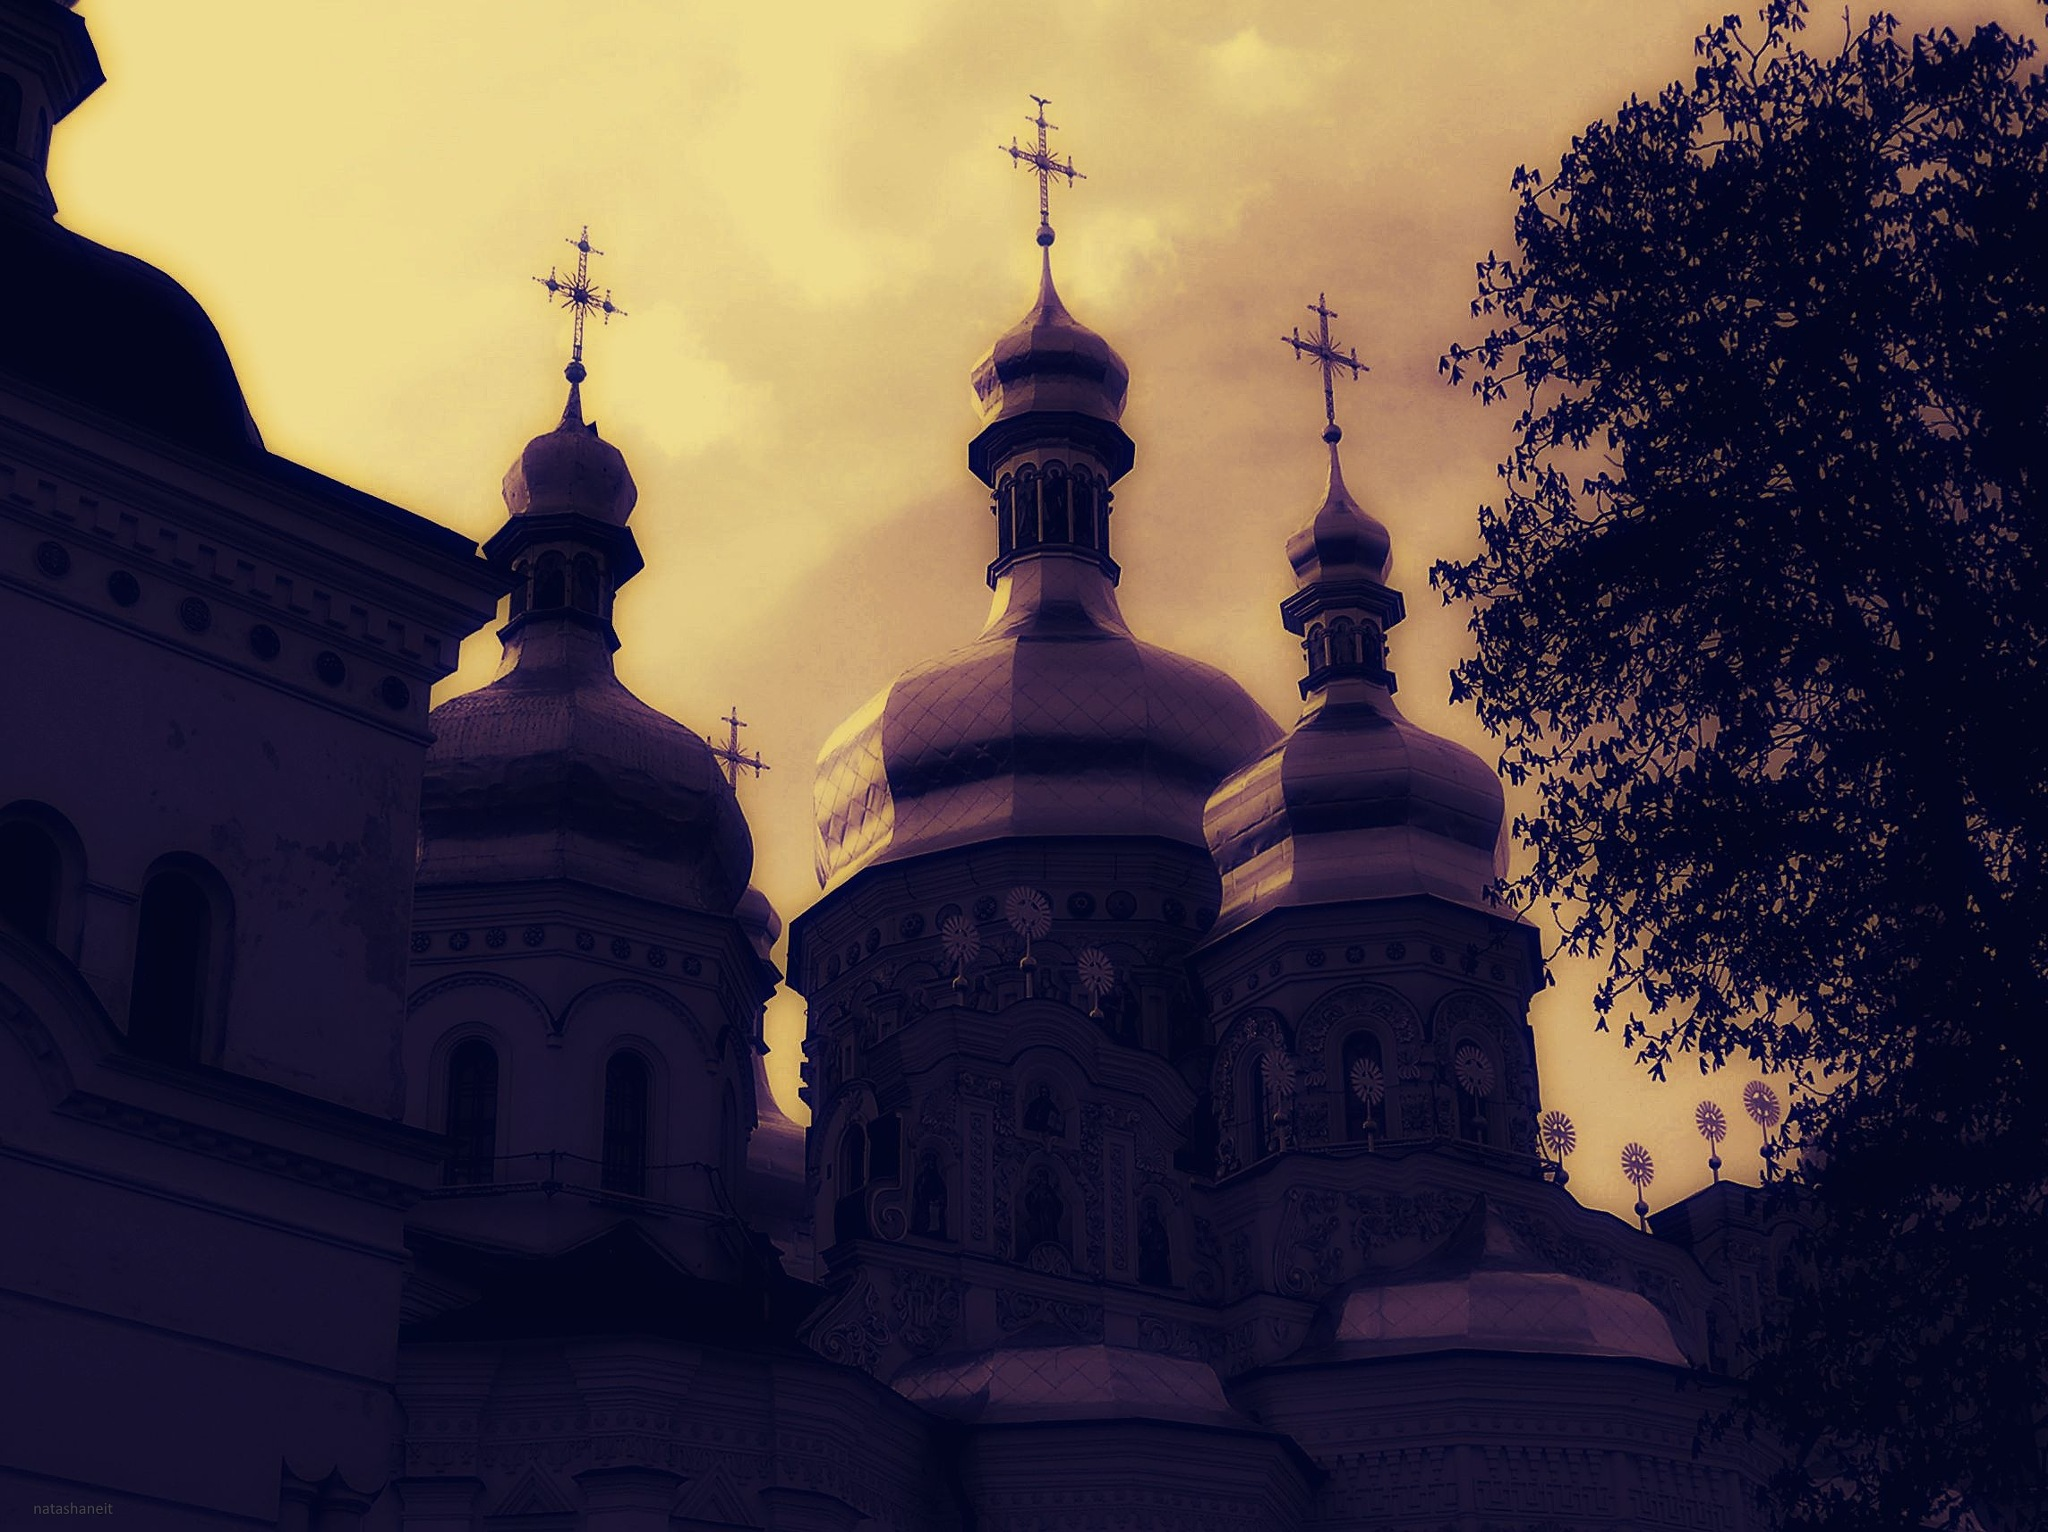 Cathedral of the Assumption at sunset by natashaneit